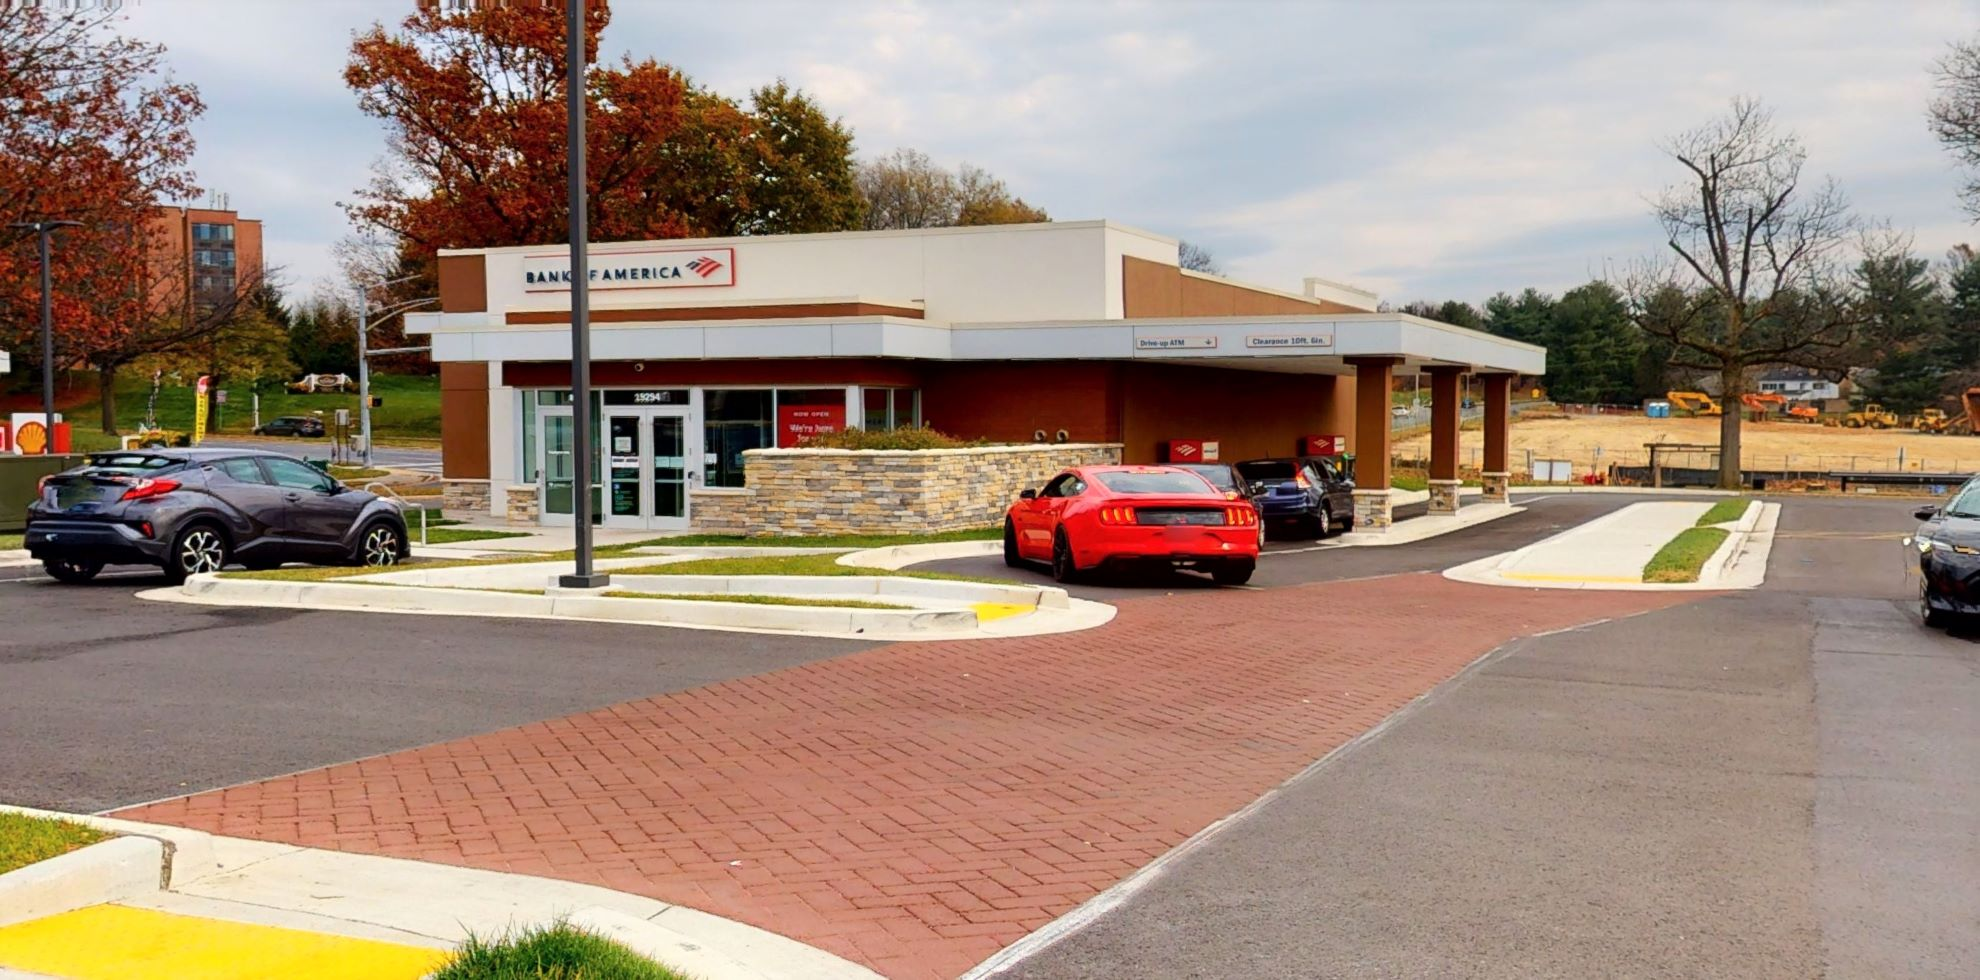 Bank of America financial center with drive-thru ATM   19294 Montgomery Village Ave, Montgomery Village, MD 20886